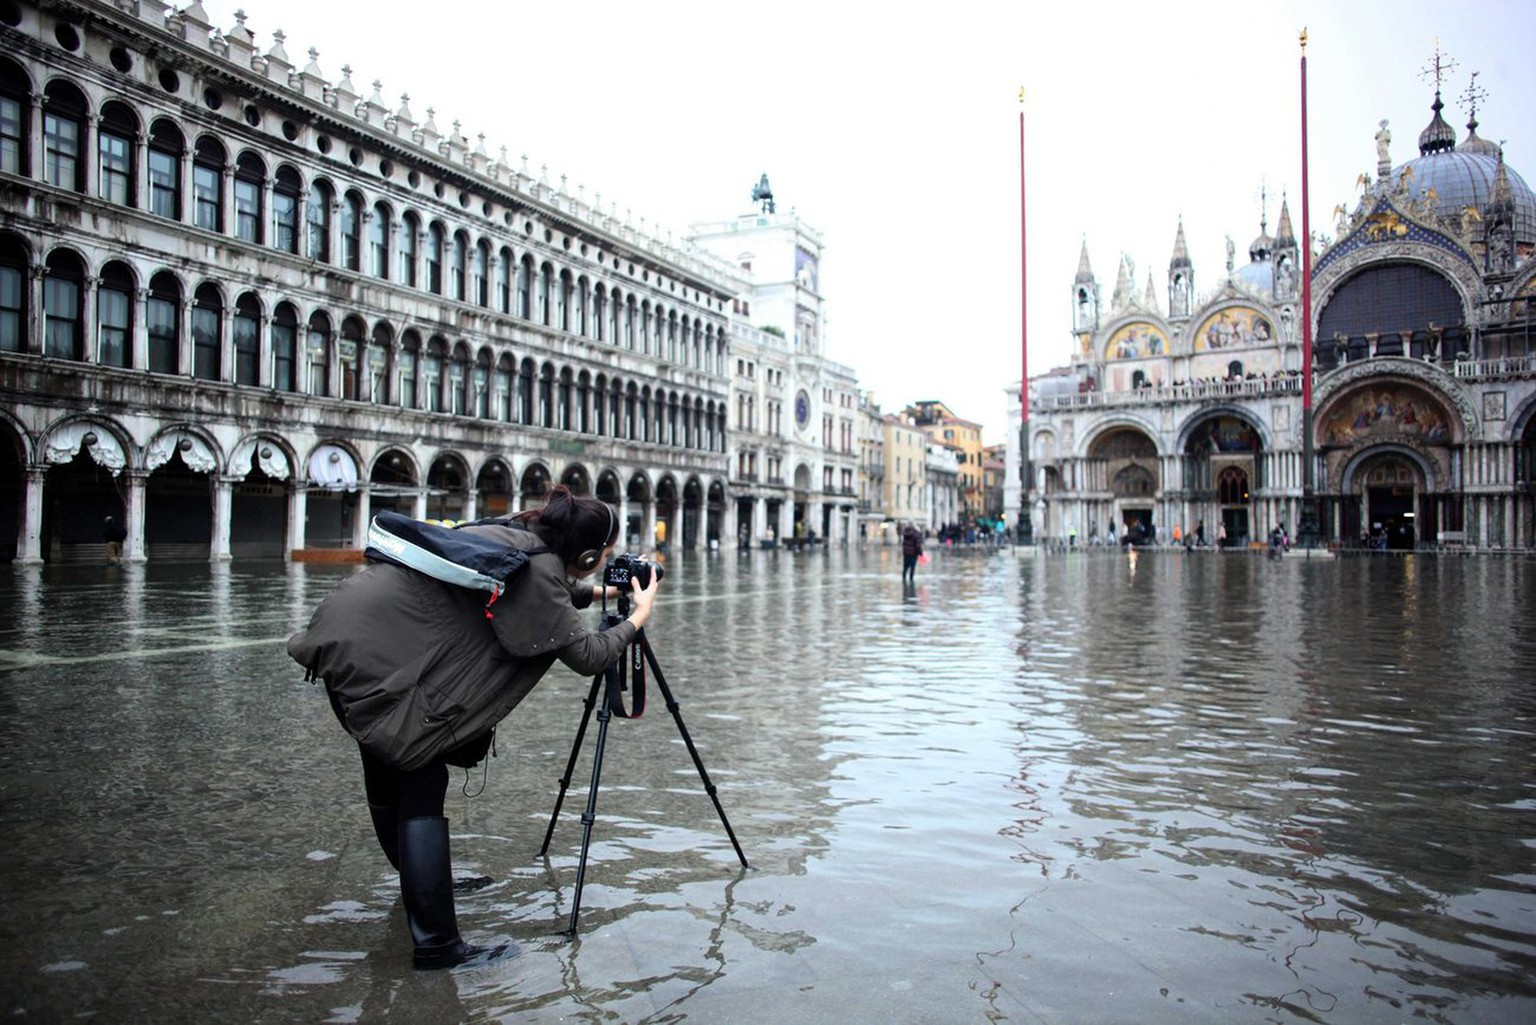 epa03488906 A tourist takes a picture in a flooded San Marco Square, Venice, Italy, 28 November 2012. In Venice, authorities were cautiously hopeful that the high water, which had reached 103 centimetres, will be lower than earlier forecast. Waters were flooding about 10 per cent of the historic city's centre, lifted higher still by the force of sirocco winds. Italy has set up weather alerts in Tuscany and in other areas of northern Italy.  EPA/ANDREA MEROLA